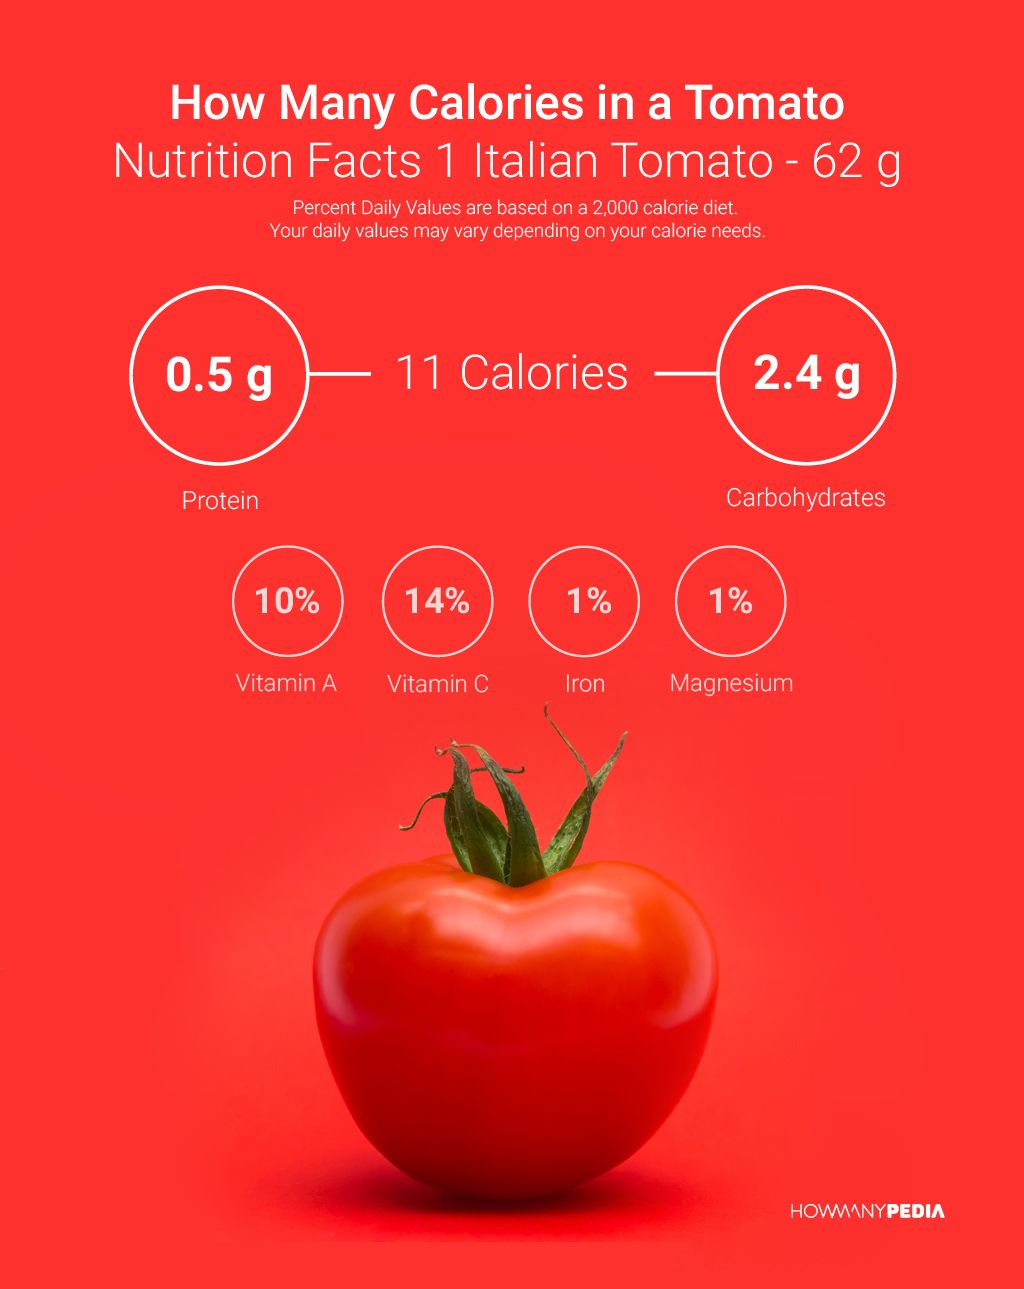 How Many Calories In A Tomato Howmanypedia Health Benefits Of Tomatoes Tomato Nutrition Calorie